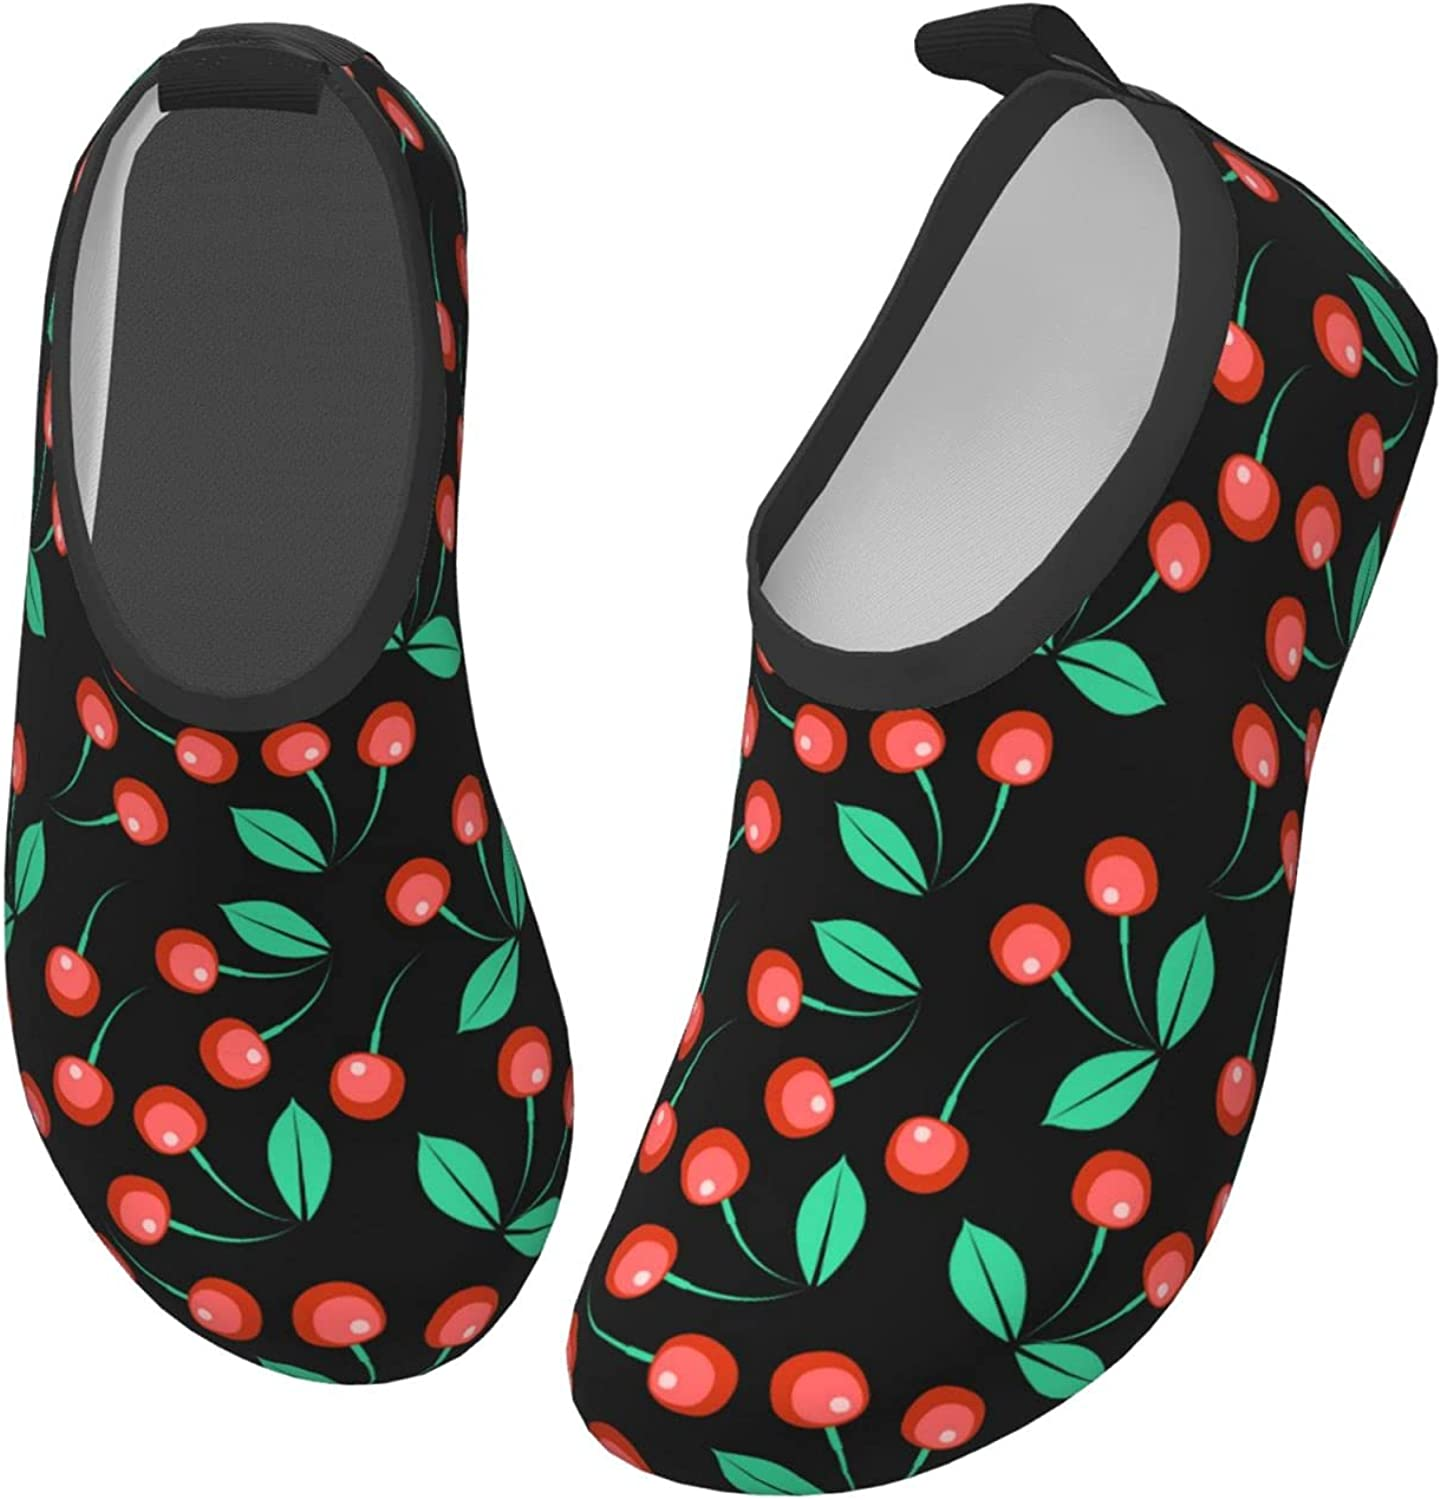 Jedenkuku Cherry Cute Fruit Children's Water Shoes Feel Barefoot for Swimming Beach Boating Surfing Yoga